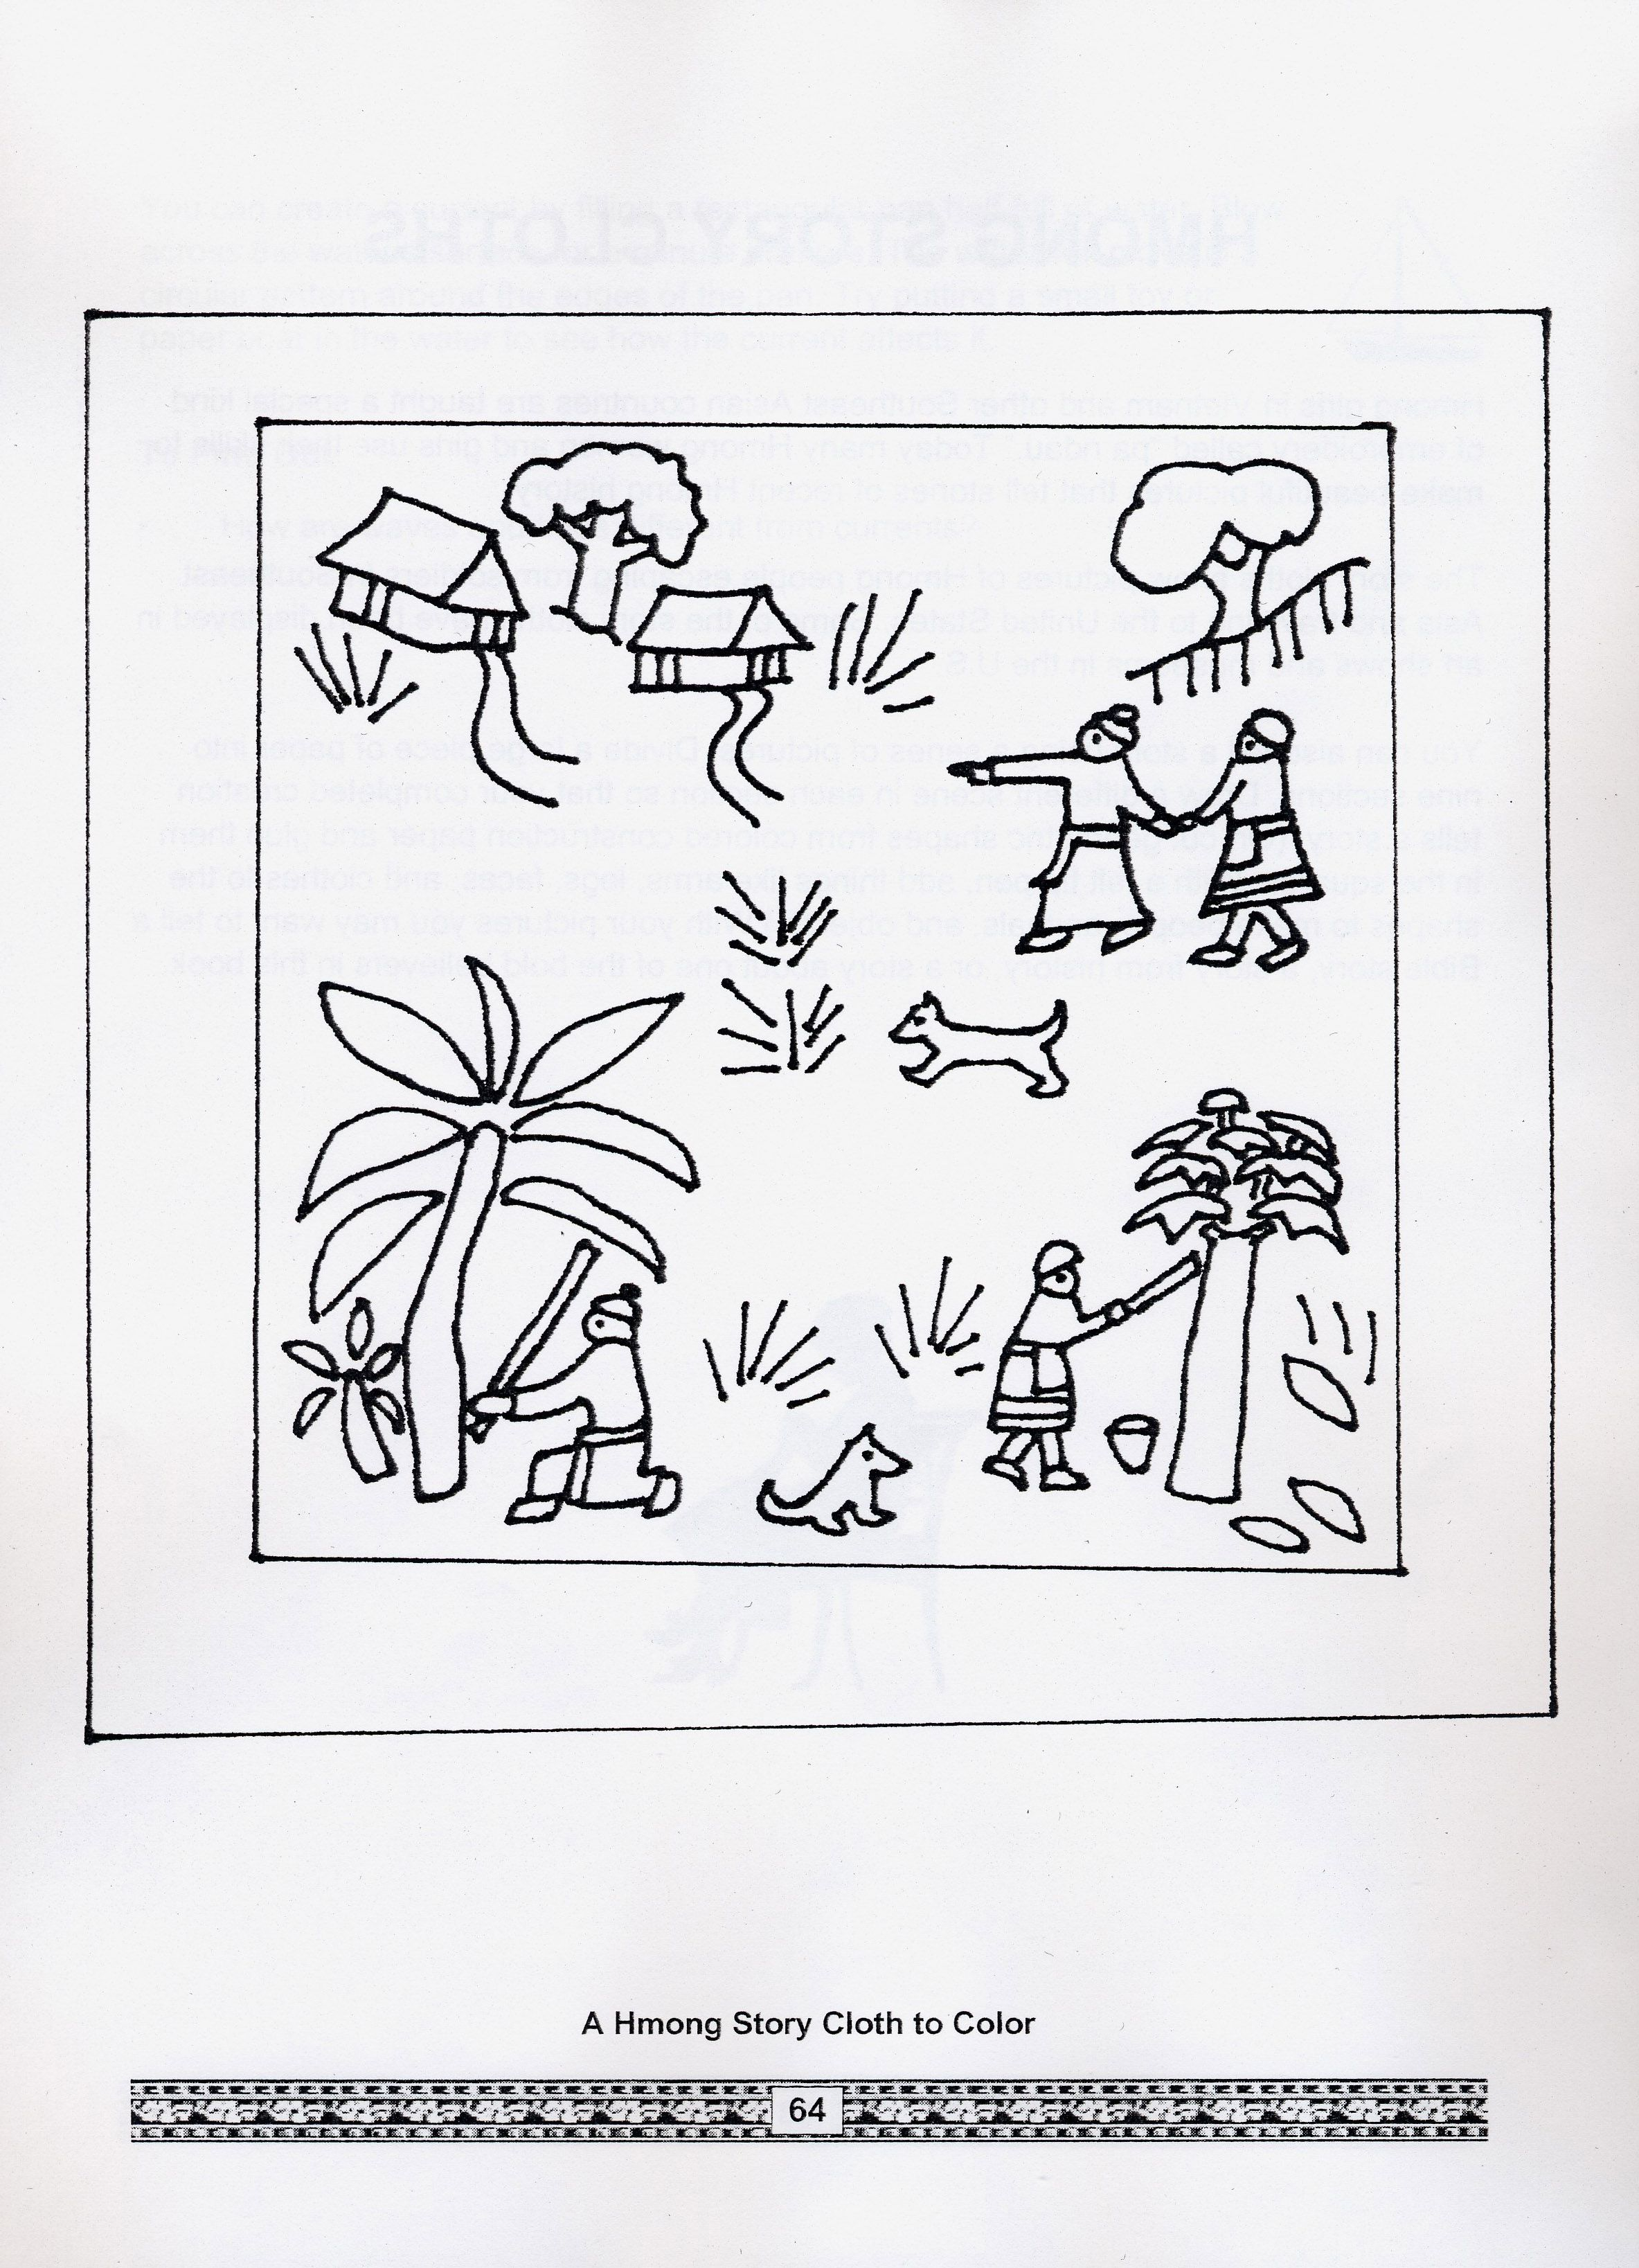 hmong coloring pages for kids - photo#3